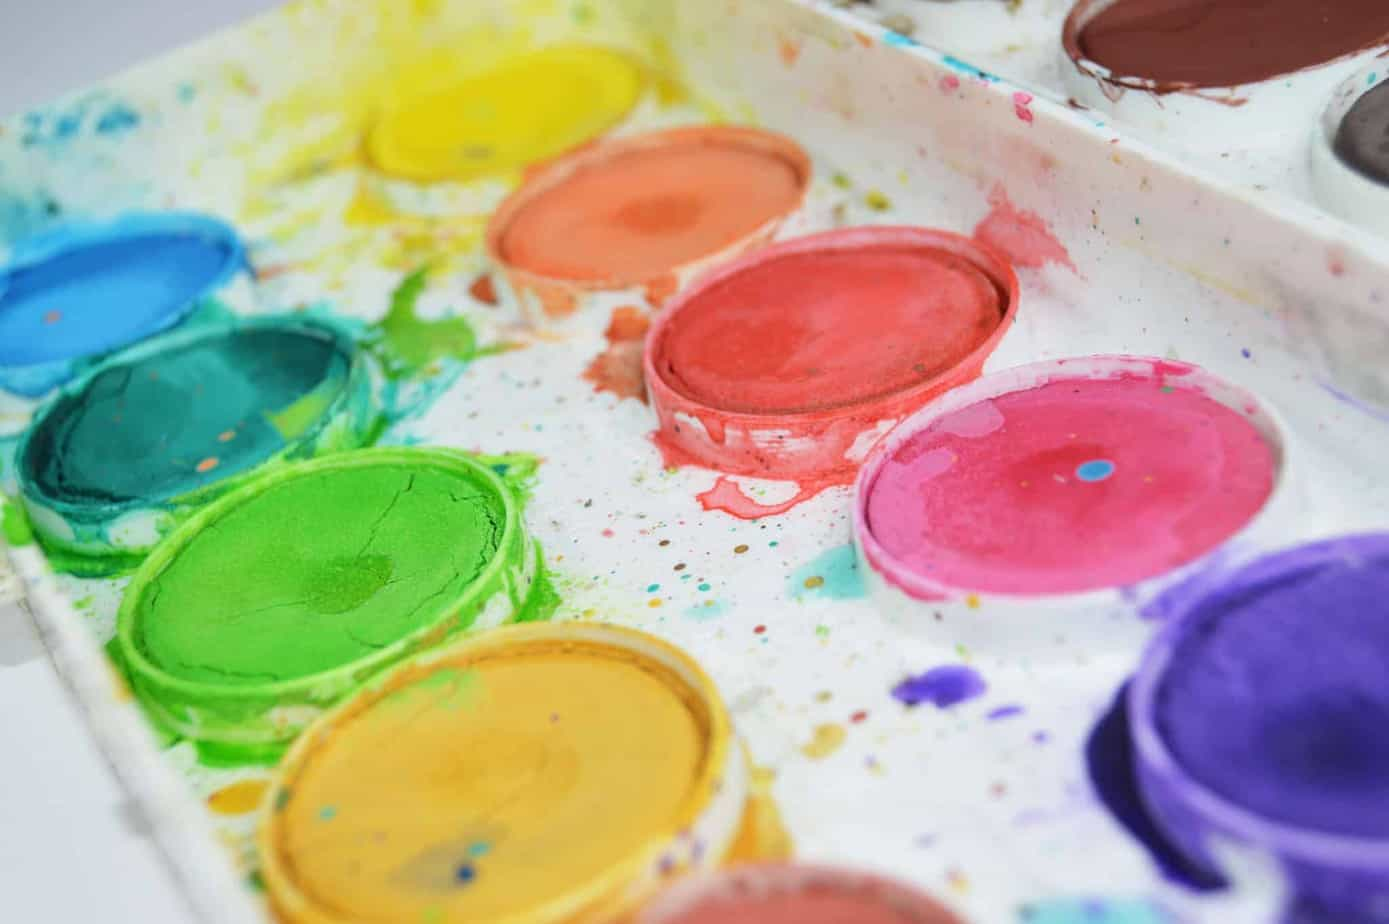 let your kids paint with watercolors and water for a quick 20-minute quiet time that is easy to set up and quick to clean up